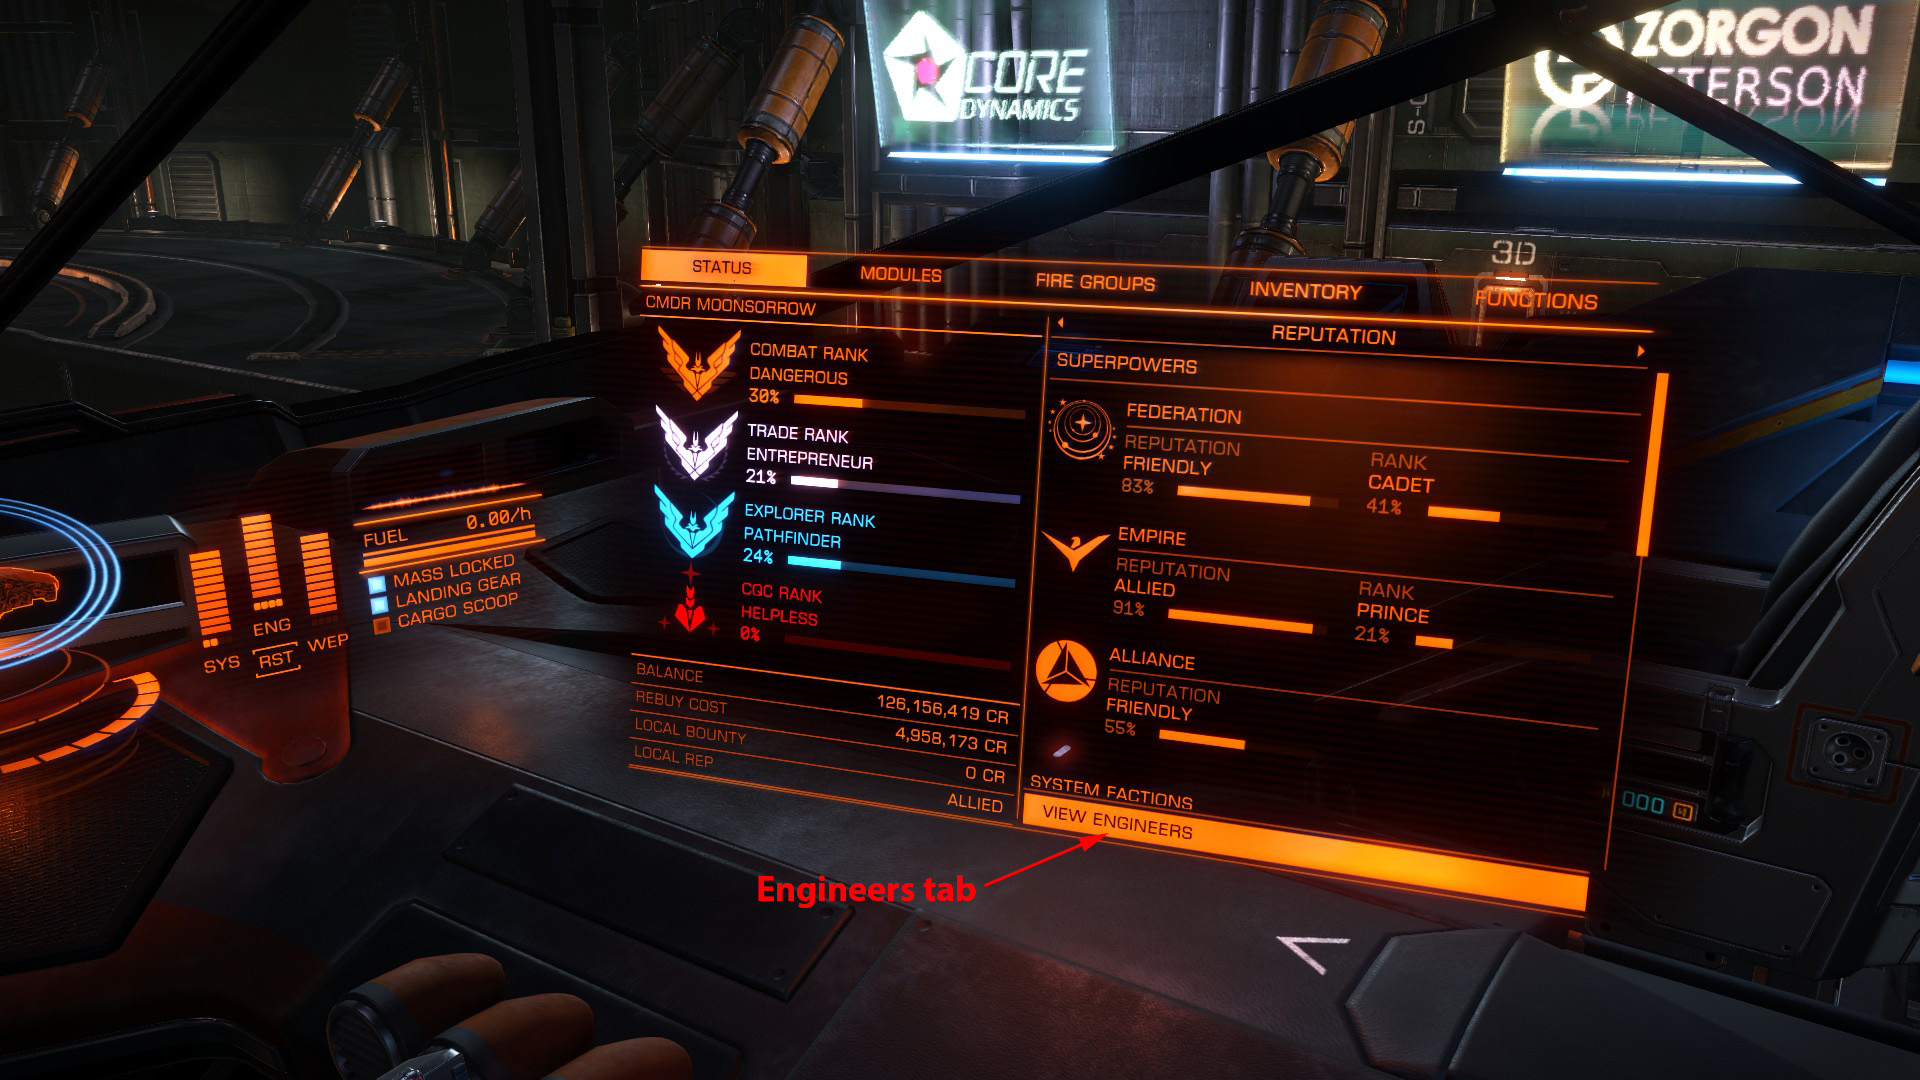 [Multi] Elite:Dangerous - Deel 4 - Role-Playing Games - GoT